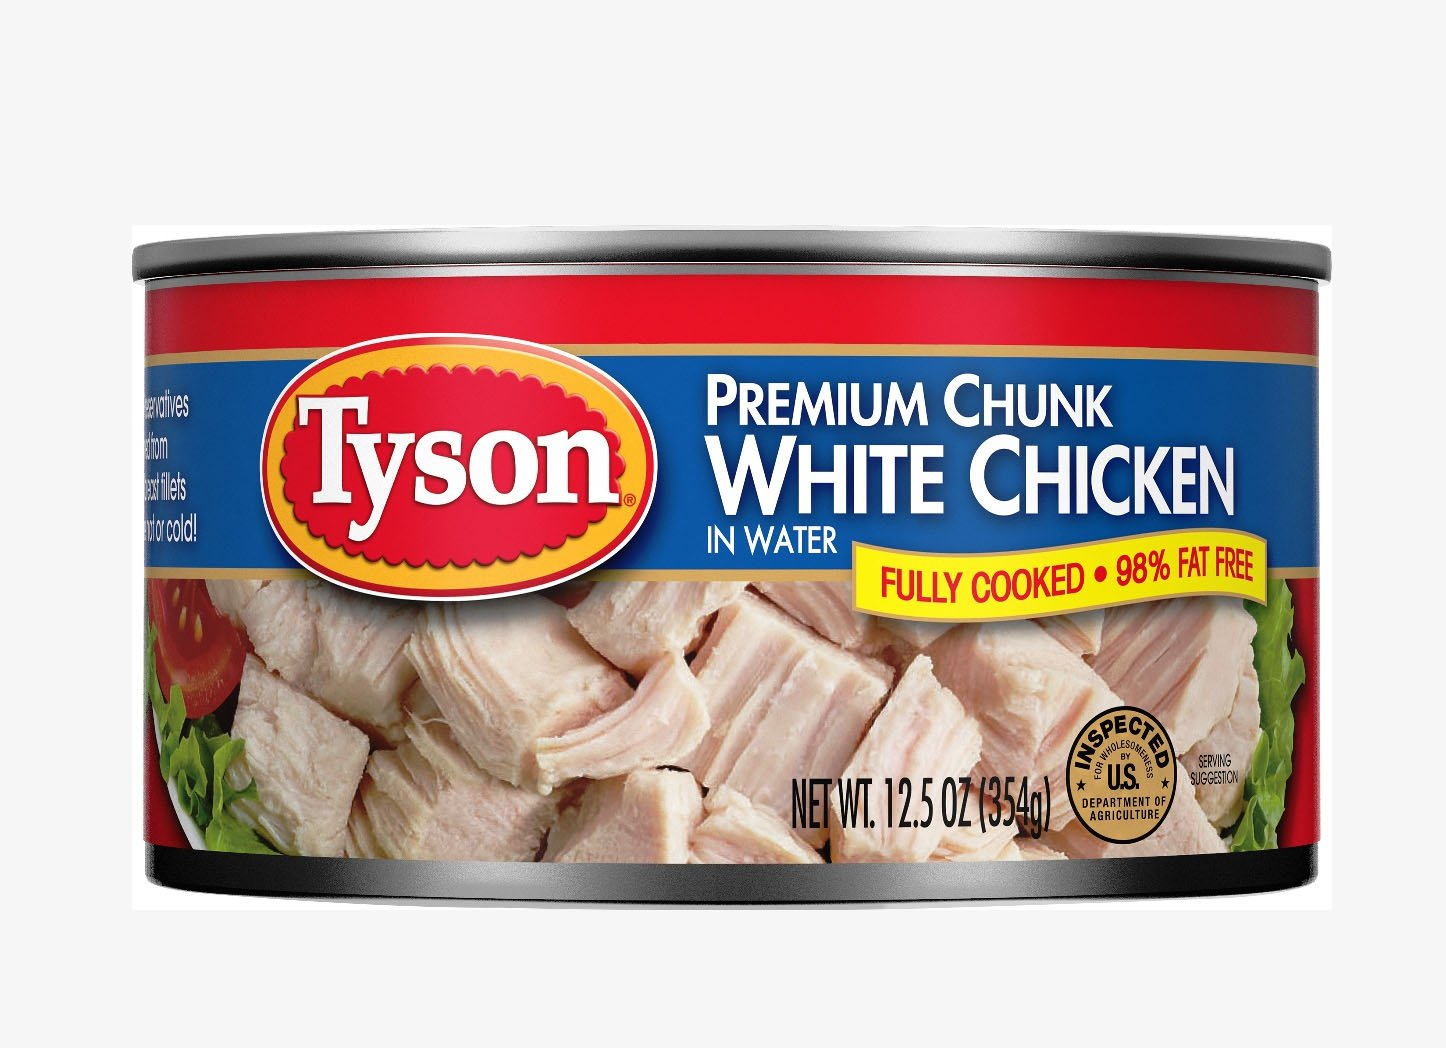 Tyson Foods Premium Chunk White Chicken 98% Fat Free, 12.5oz Can (Pack of 6)